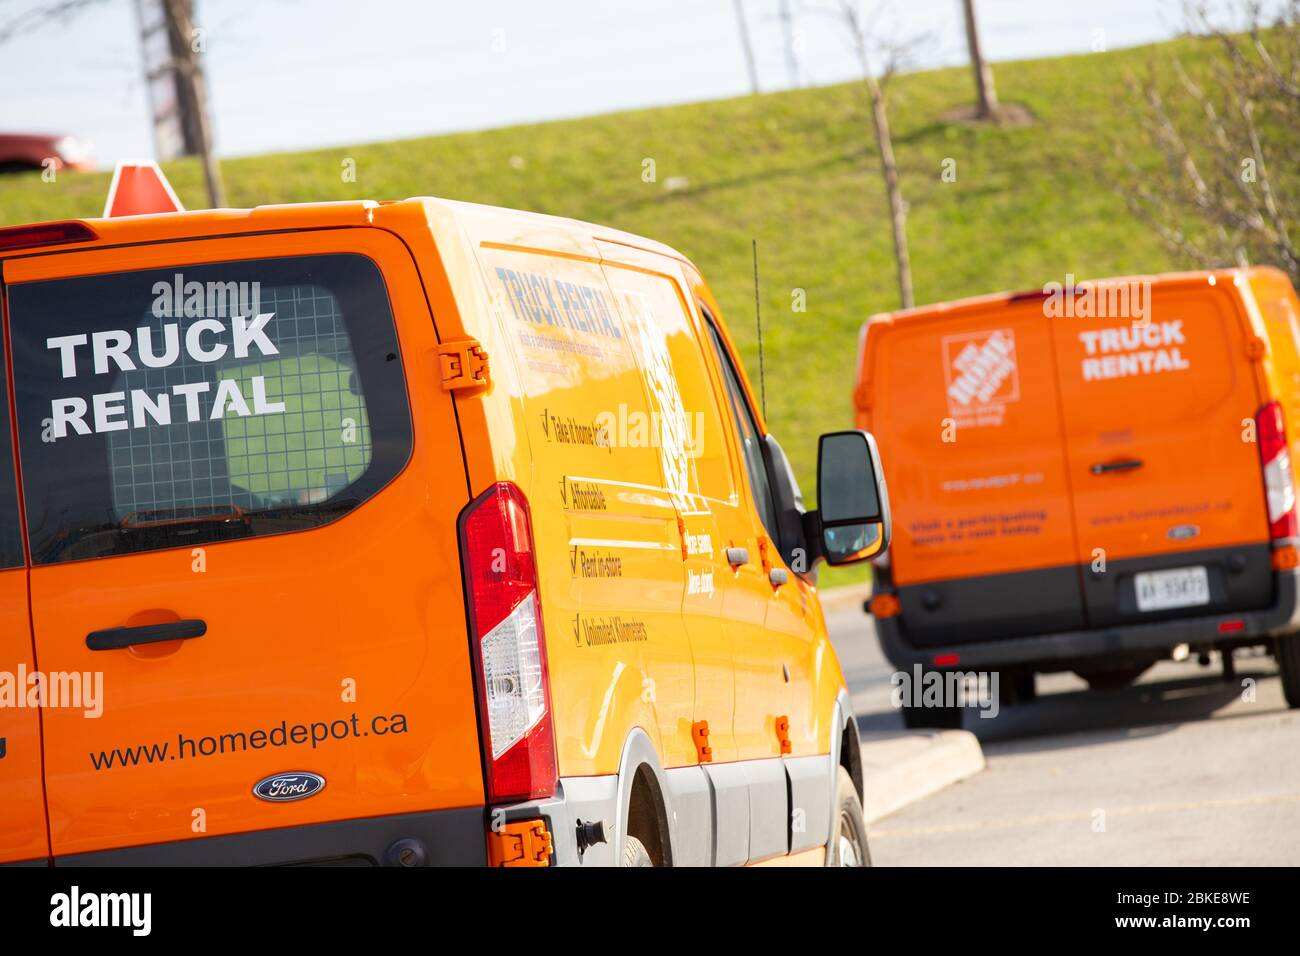 Delivery Trucks Or Vans Are Seen Parked At The Home Depot Empty Parking Lot Stock Photo Alamy